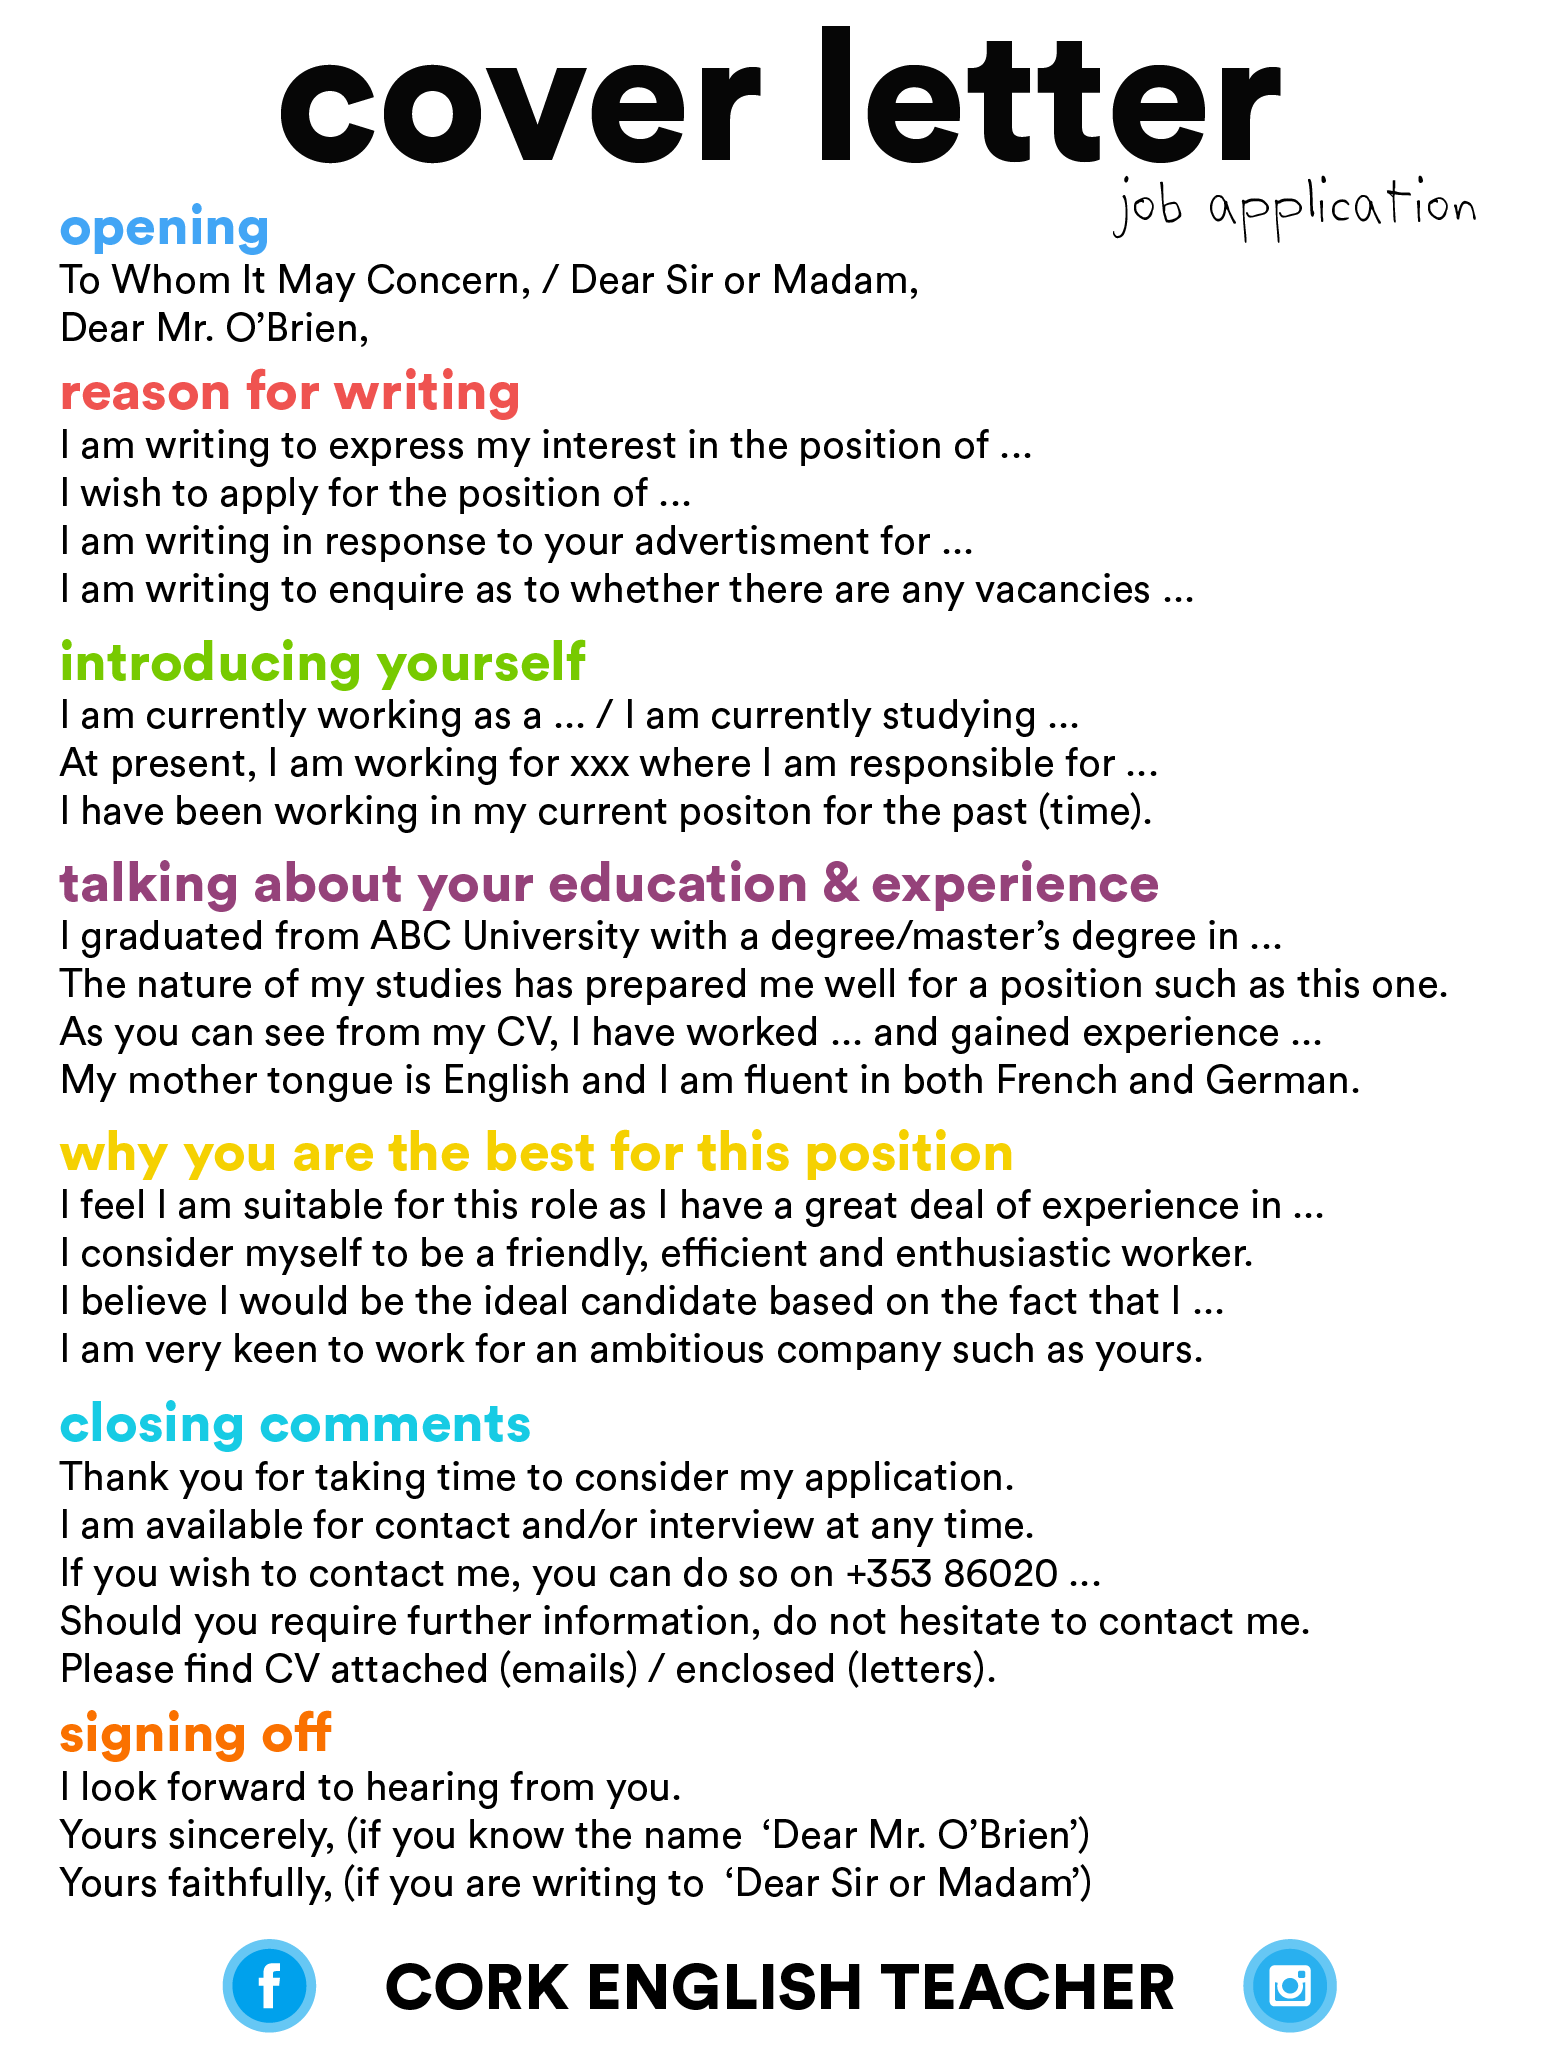 job application covering letter format samples